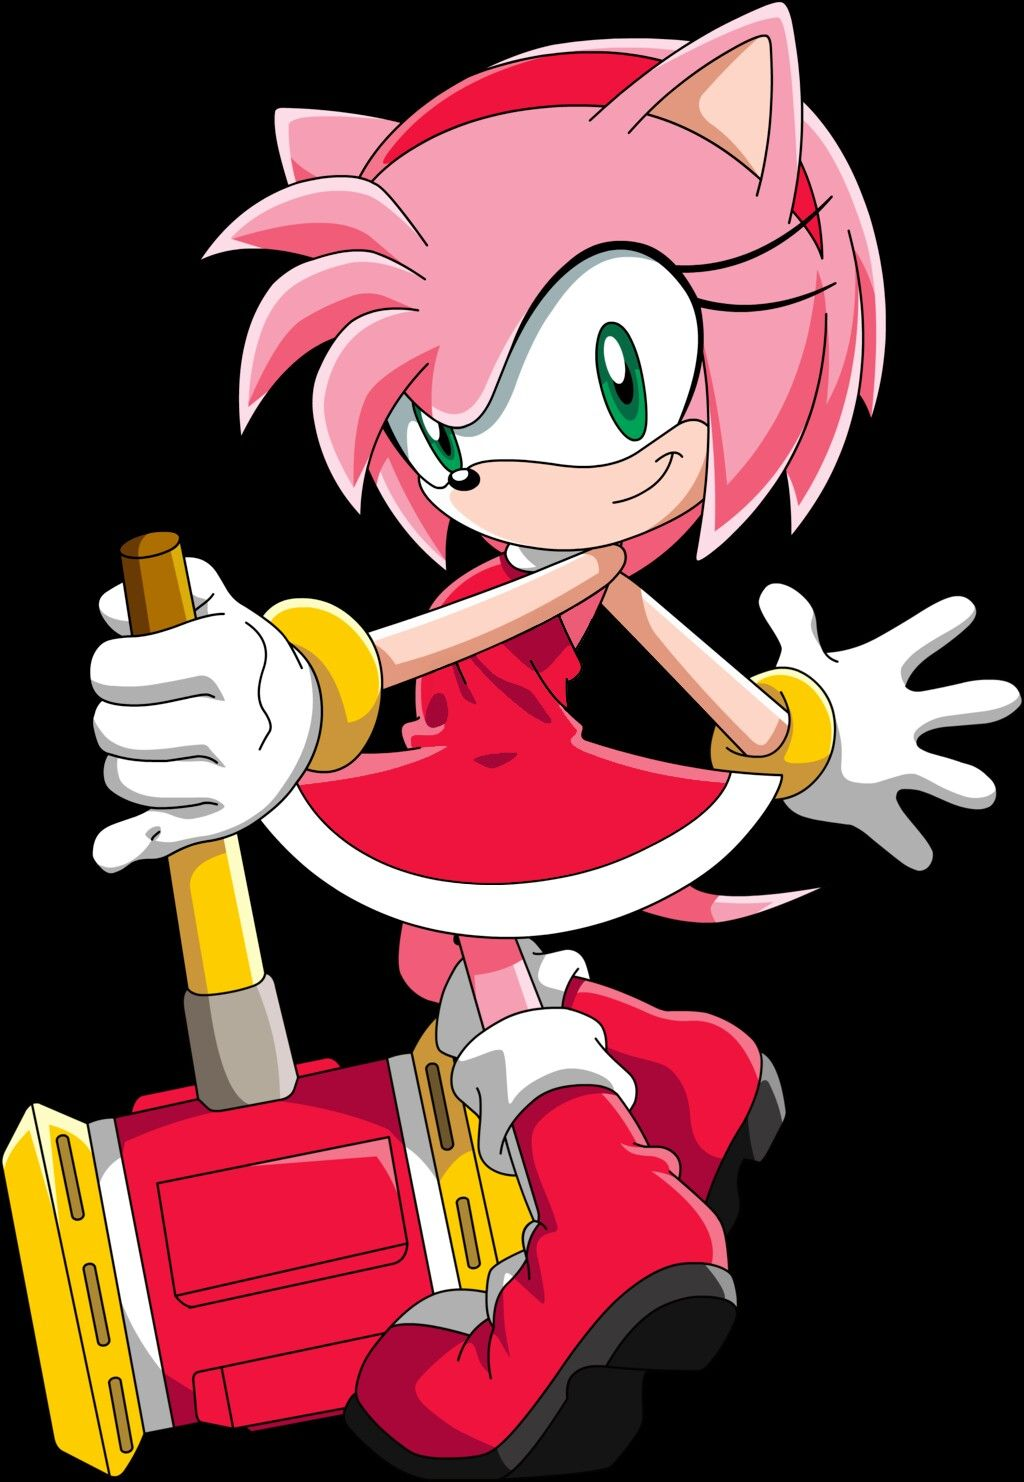 Waifu 1 From Game Amy rose, Sonic, Amy the hedgehog